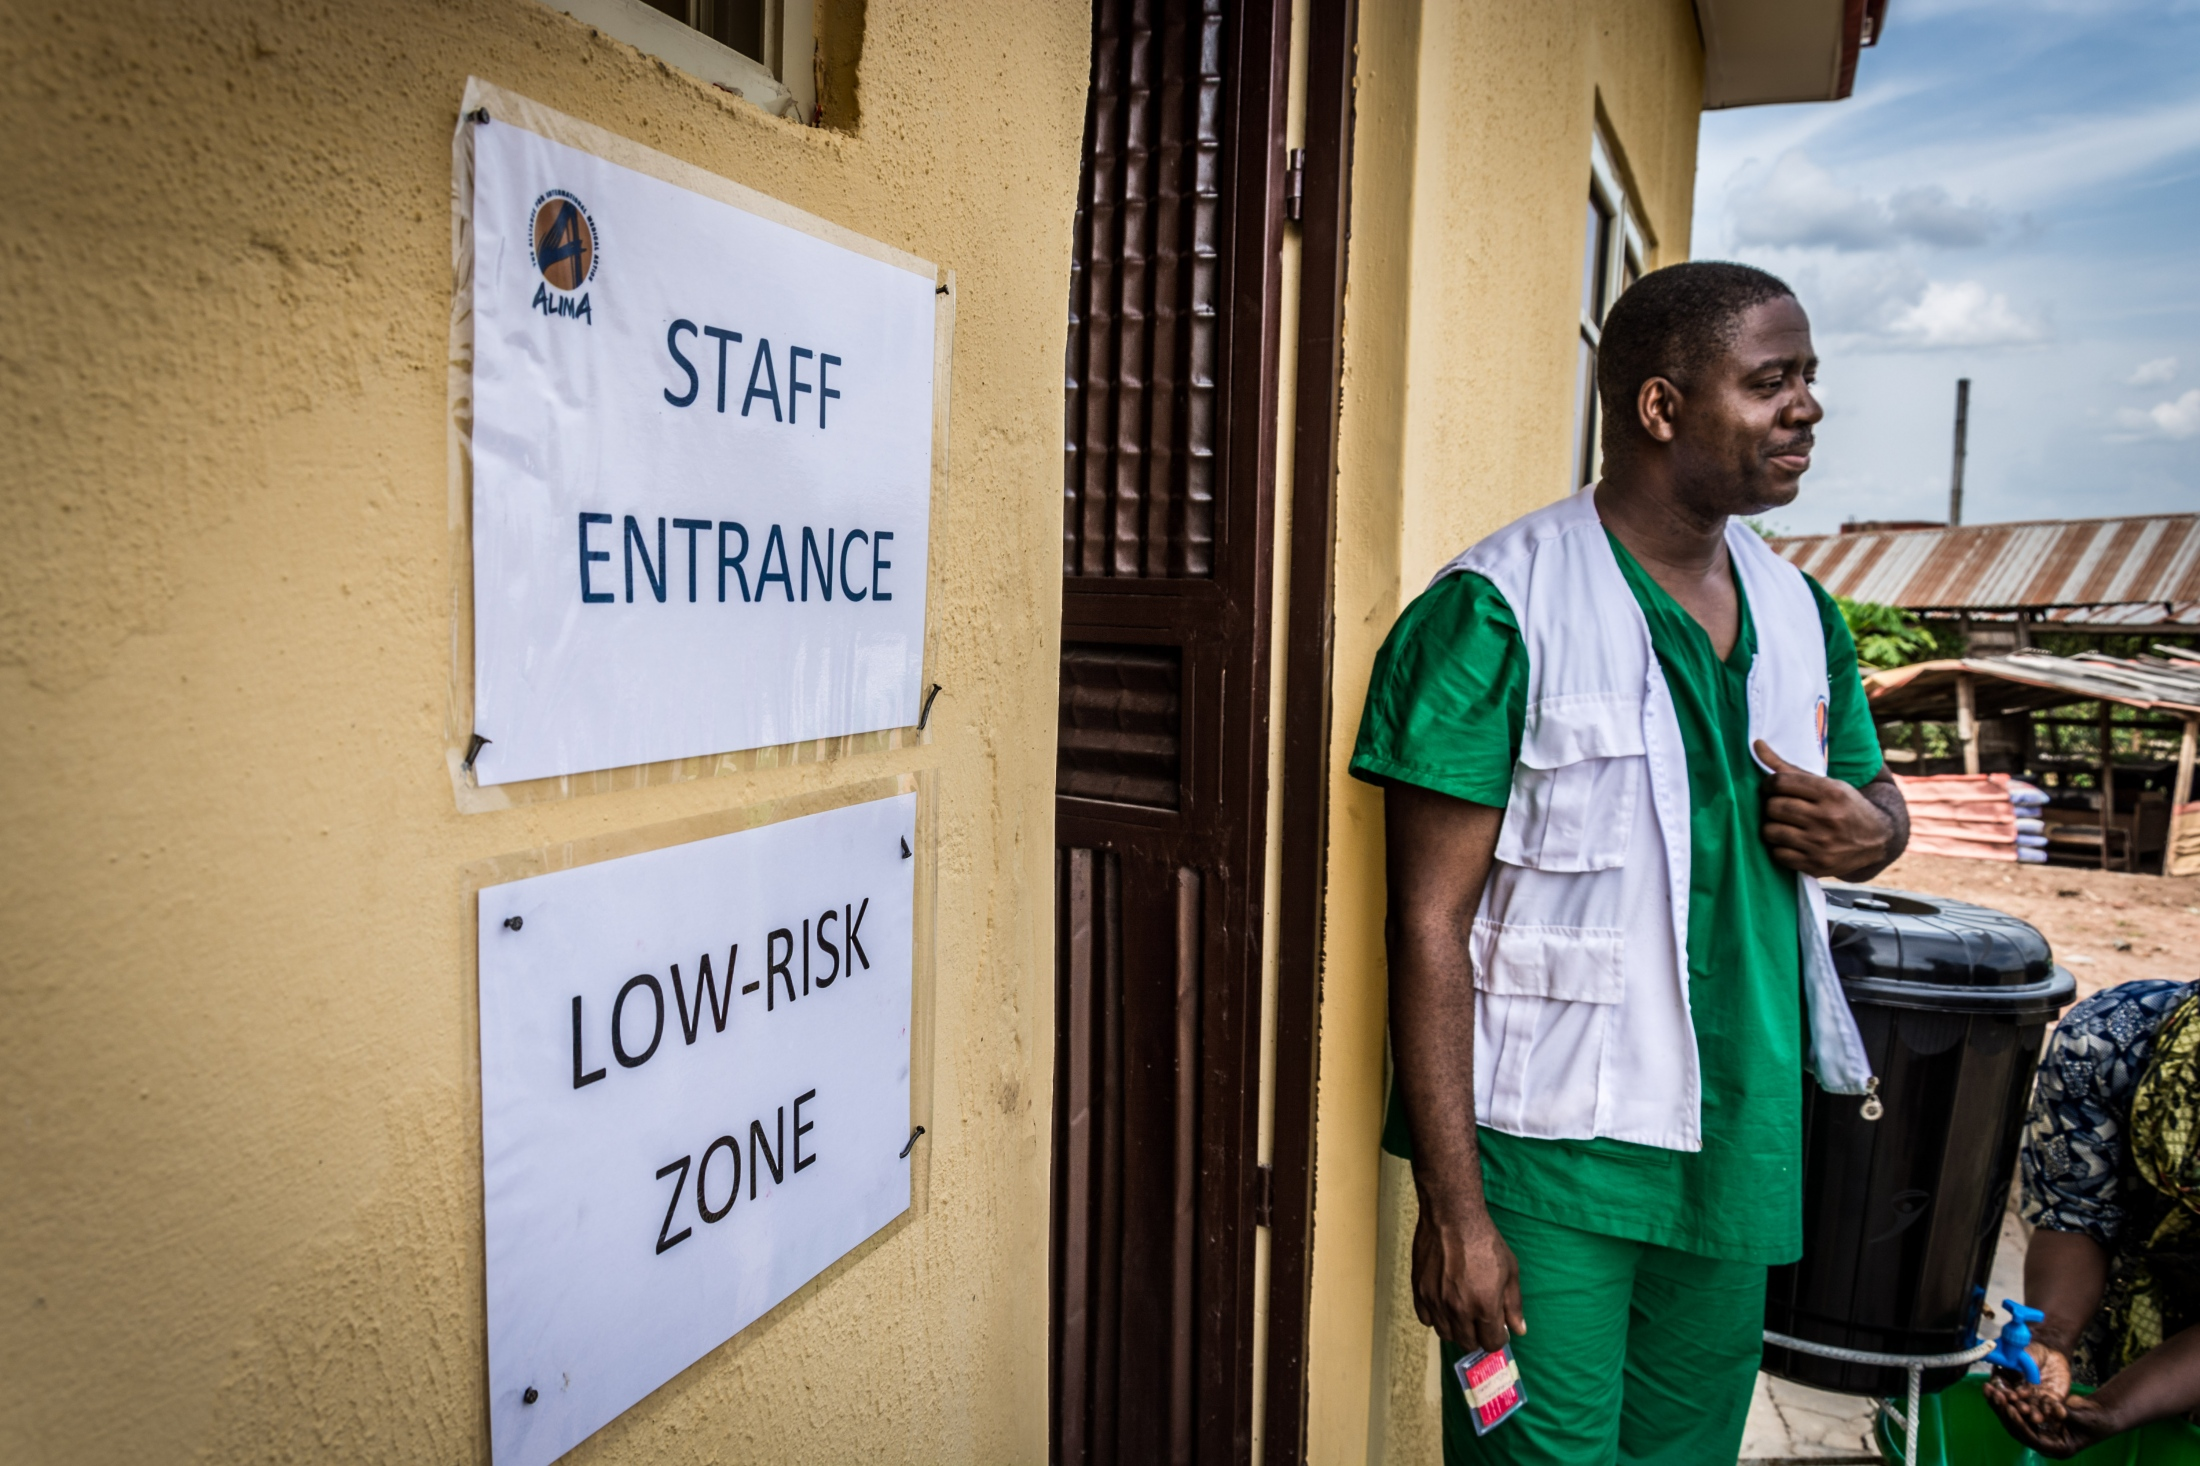 Dr. Dally stands in front of the Staff Entrance at the Infection Control Centre (ICC) iat the Federal Medical Centre, Owo, Ondo state. The Staff entrance, is considered a low risk zone because patients don't have access to the area.